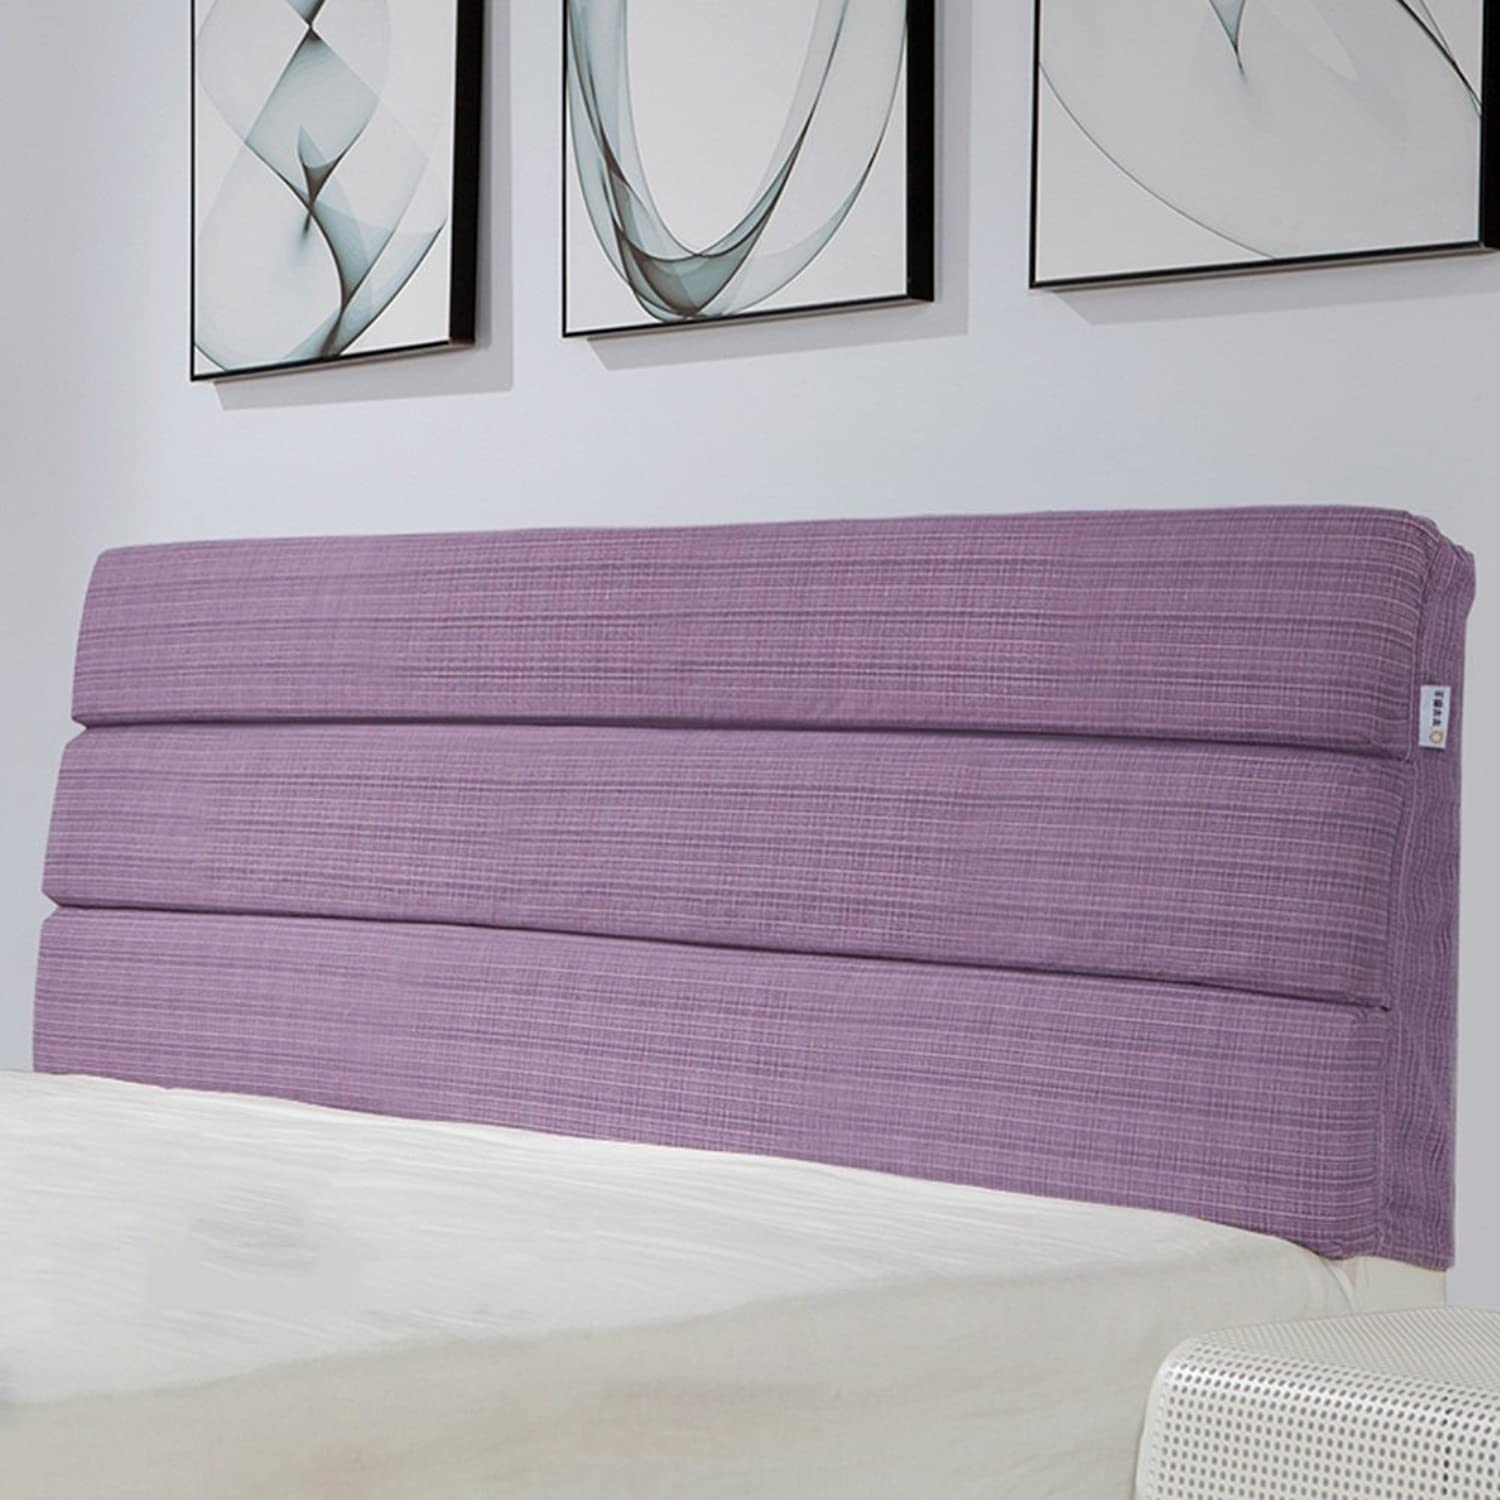 WENZHE Upholstered Fabric Headboard Bedside Cushion Pads Cover Bed Wedges Backrest Waist Pad Checker Cloth Art Soft Case Home Bedroom Large Back Sofa Pillow Washable Multifunction Do Not Collapse Breathable There Are Headboards, 4 colors, 9 Sizes Optional